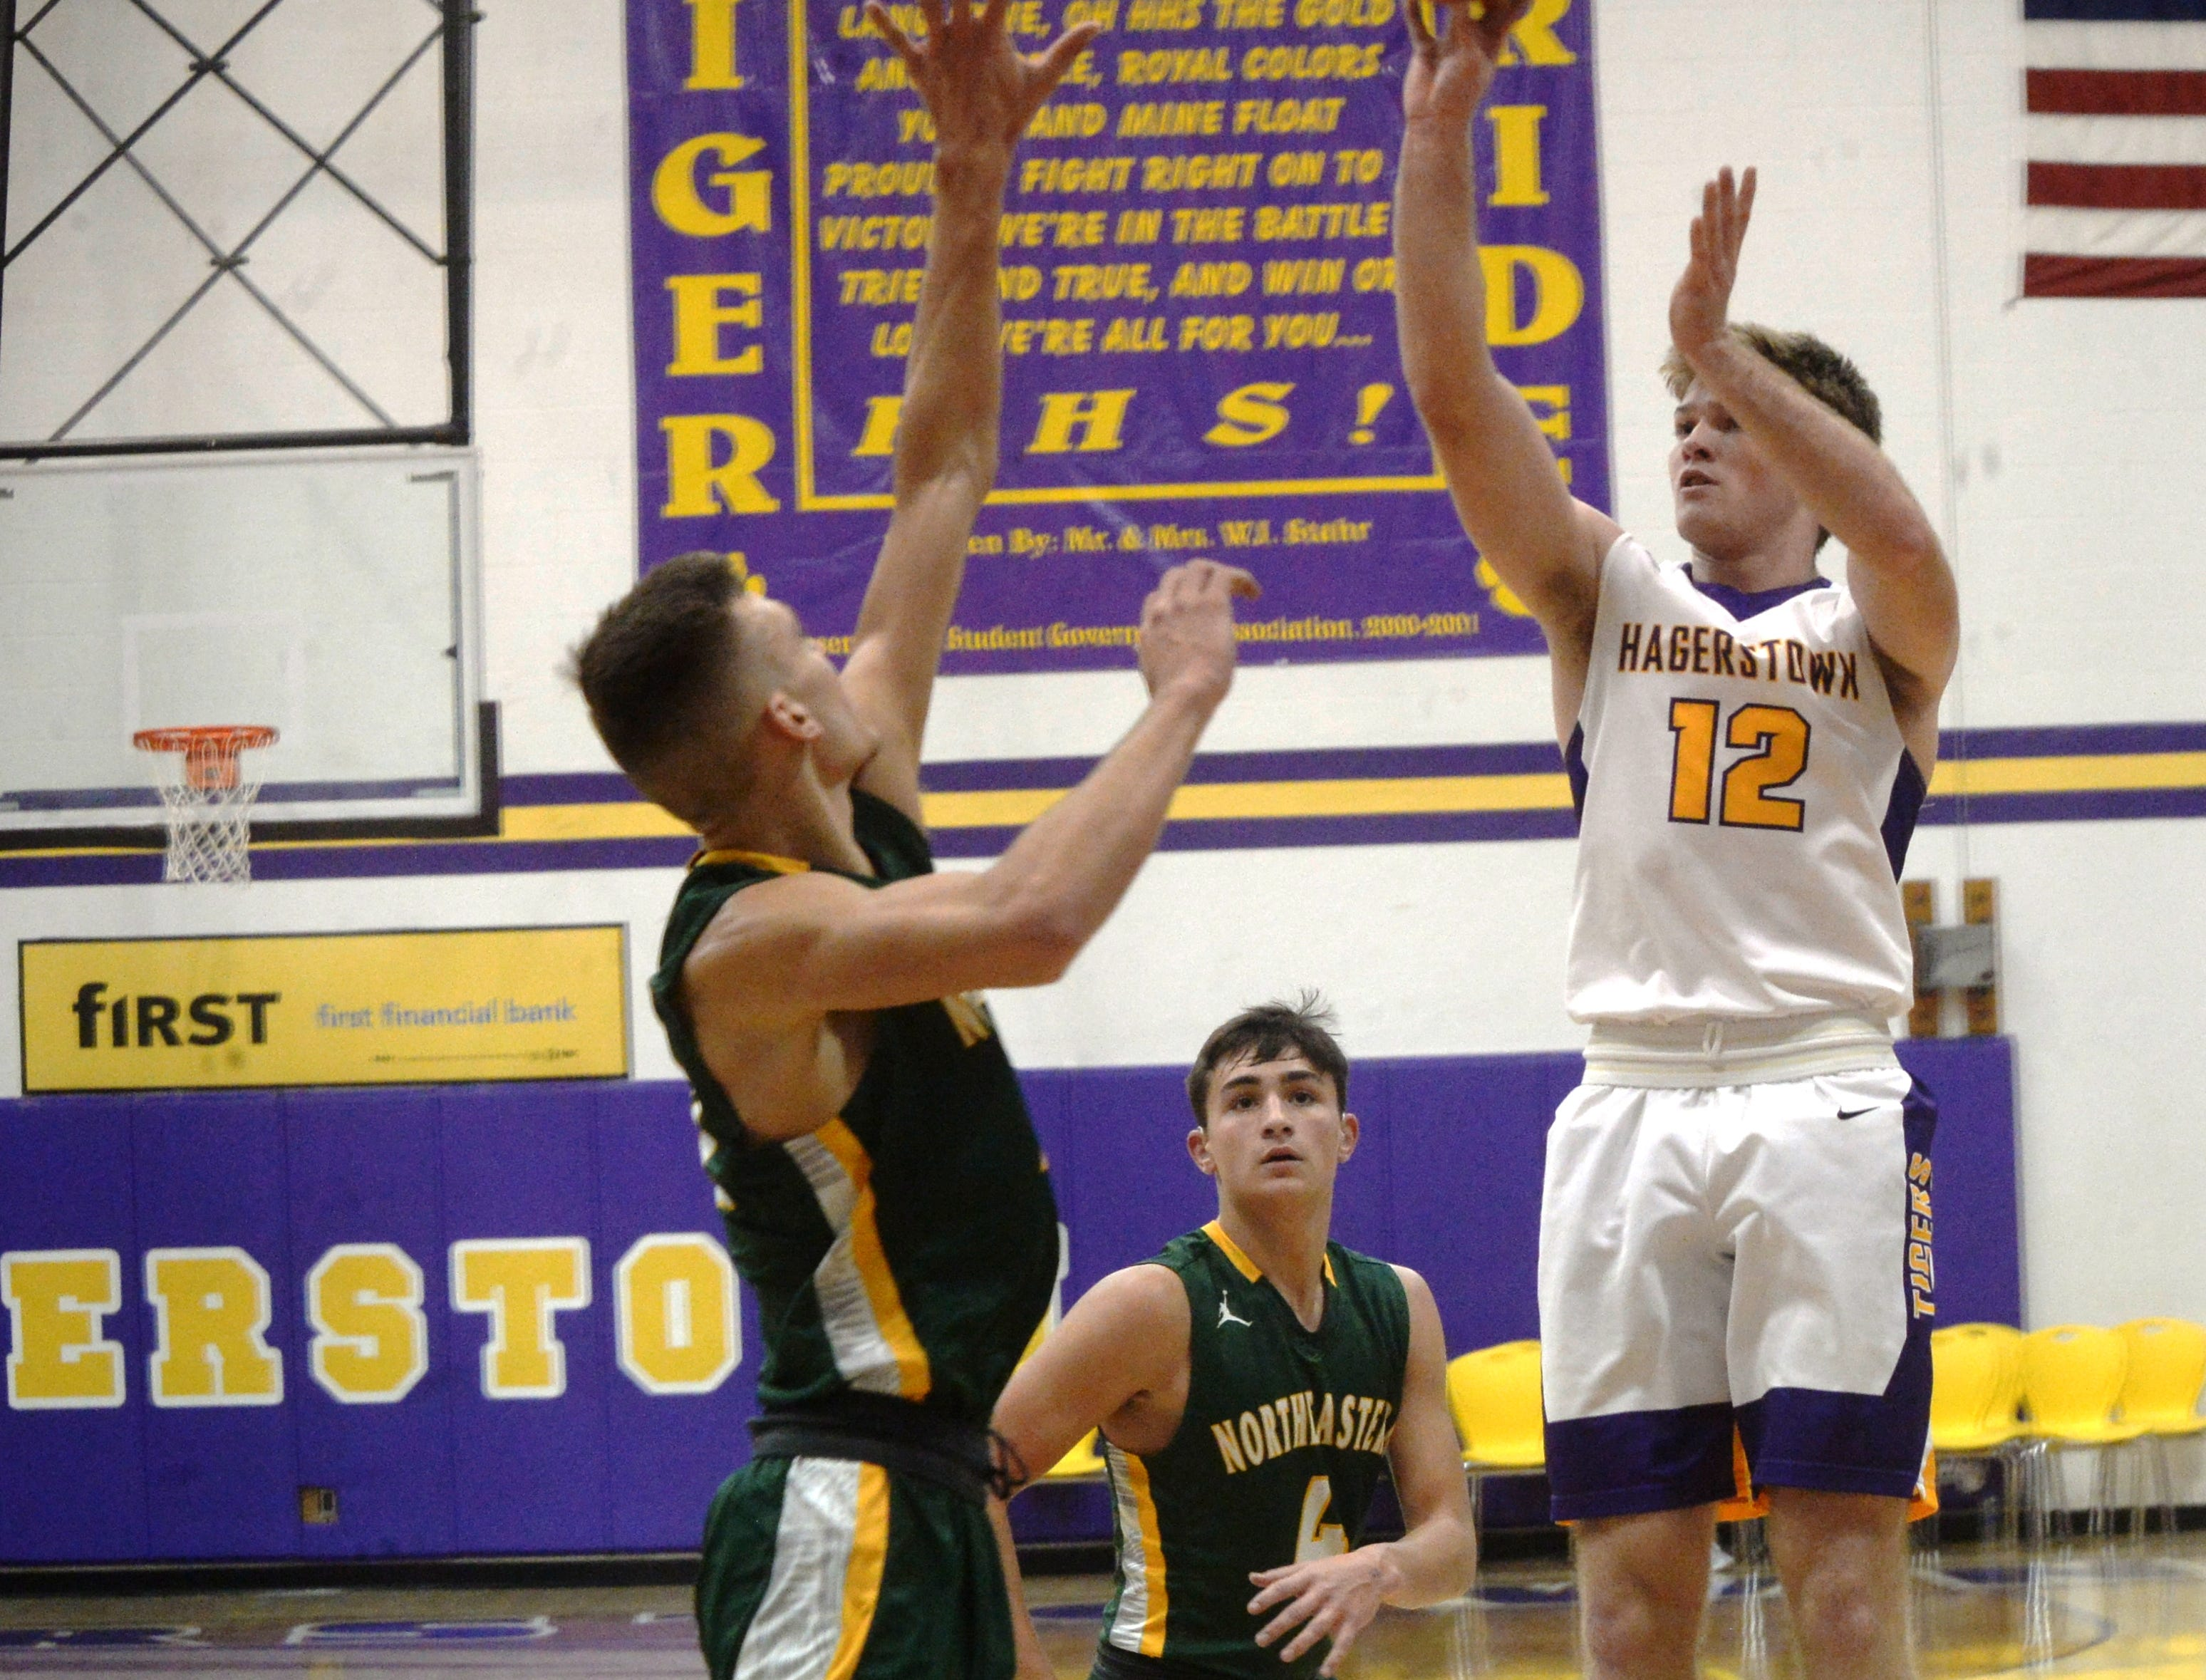 Hagerstown's Cody Swimm shoots the ball during the Wayne County boys basketball championship at Hagerstown Saturday, Jan. 5, 2019. Hagerstown defeated Northeastern 37-35 to win the girls' title, and Northeastern beat Hagerstown 60-49 in the boys championship.